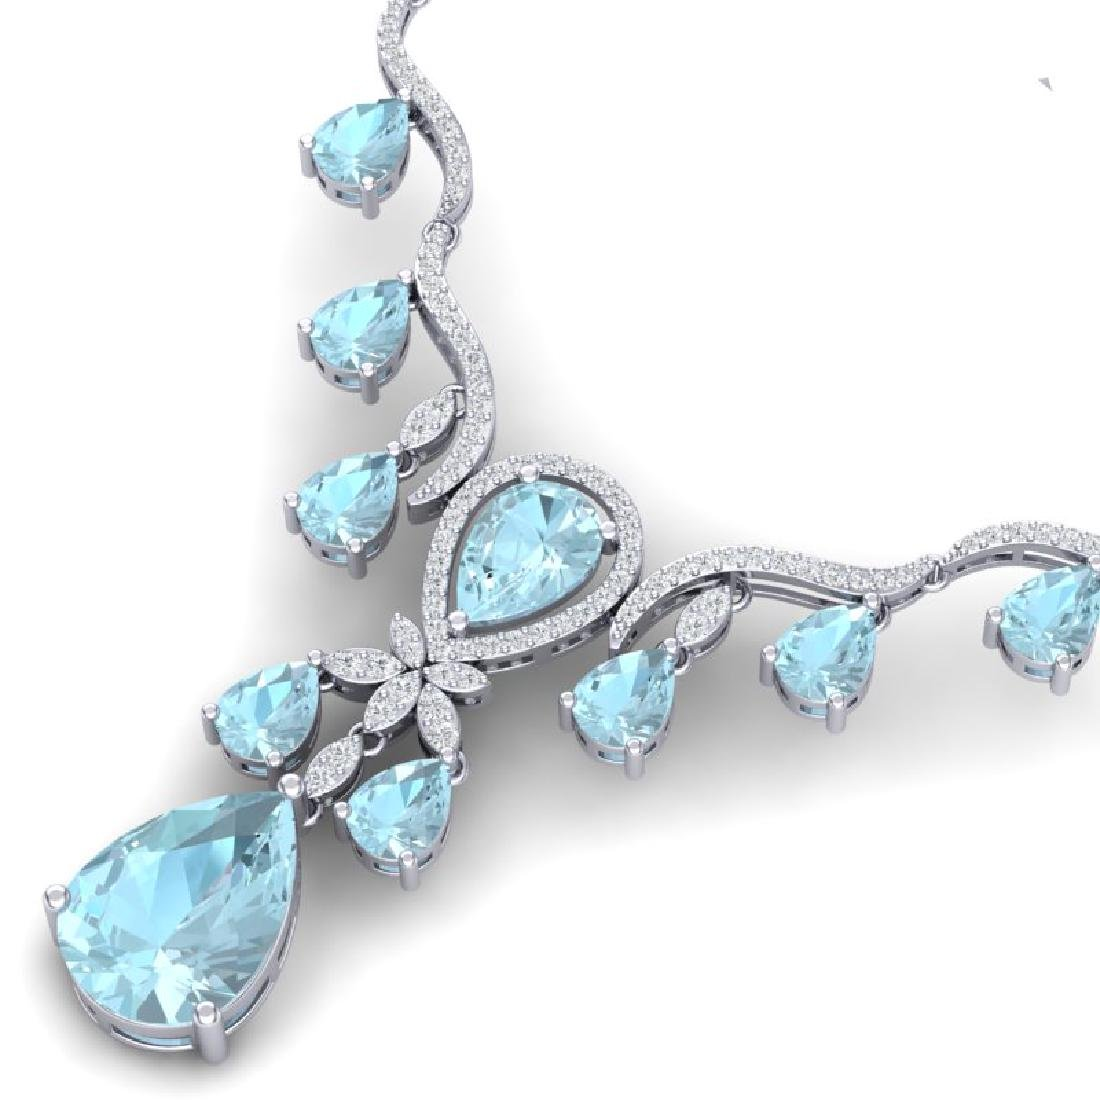 38.14 CTW Royalty Sky Topaz & VS Diamond Necklace 18K - 2